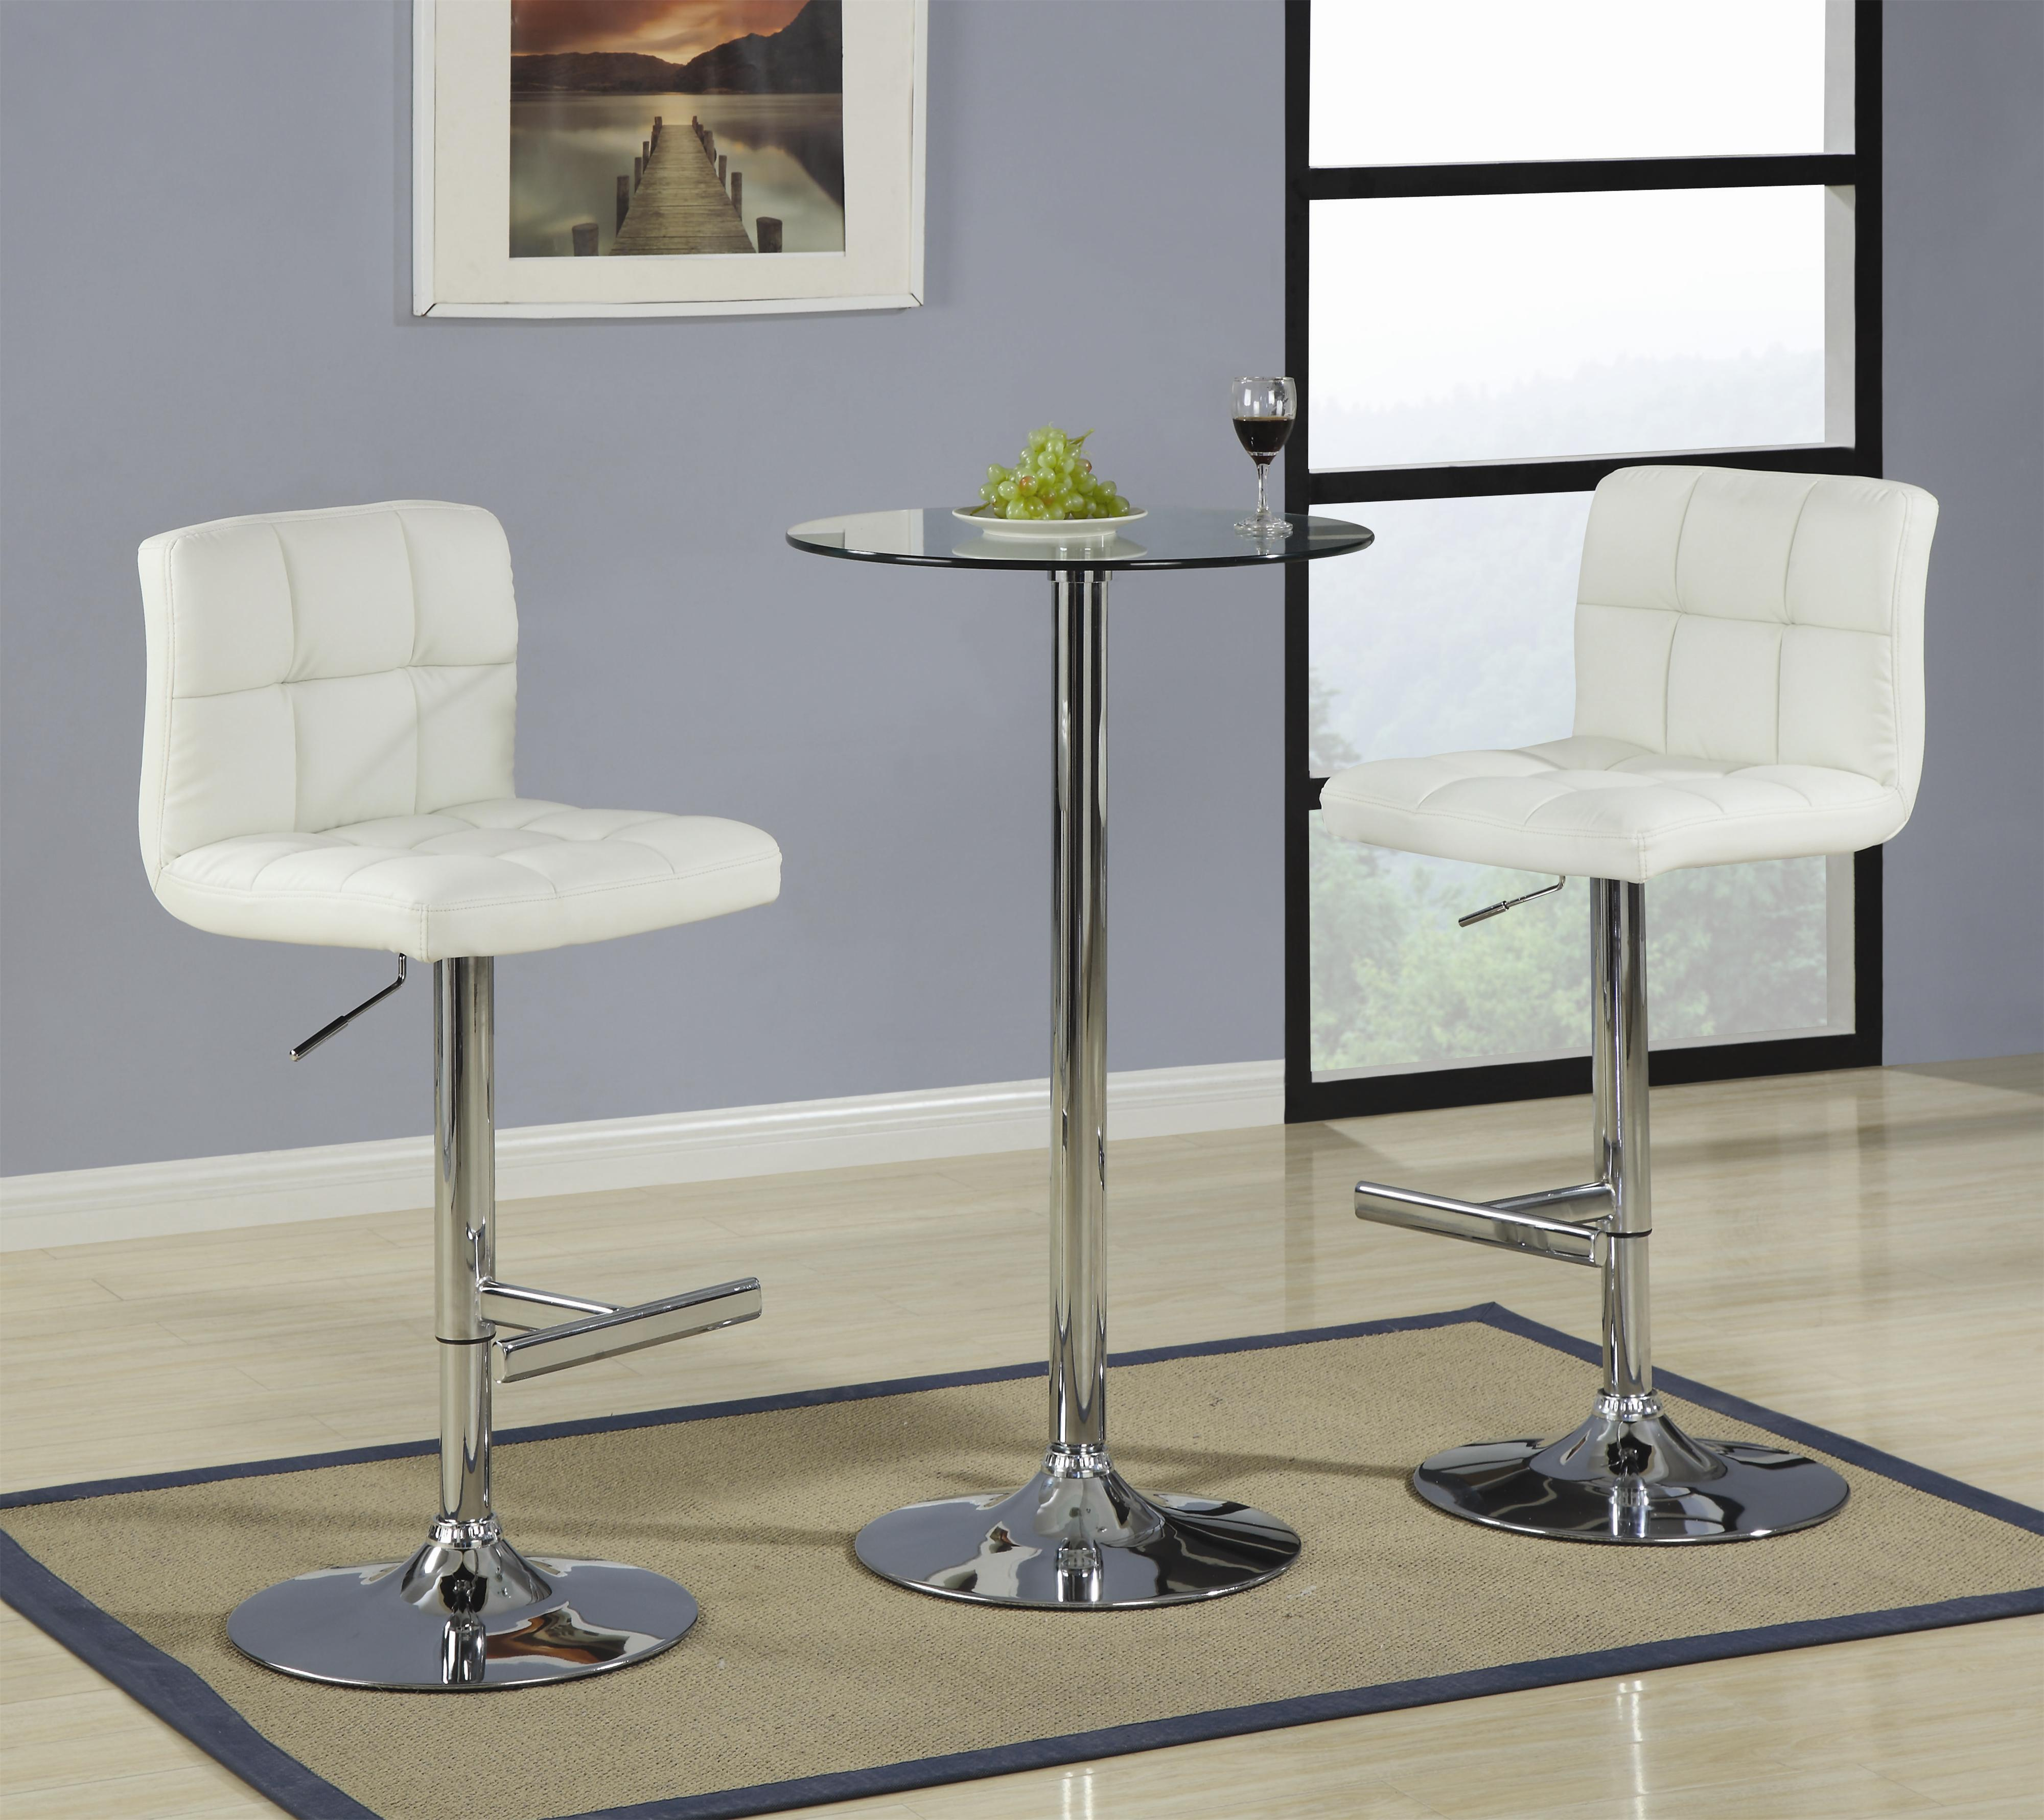 Bar Units and Bar Tables 3 Piece Bar Table with Glass Top Set  by Coaster at Standard Furniture